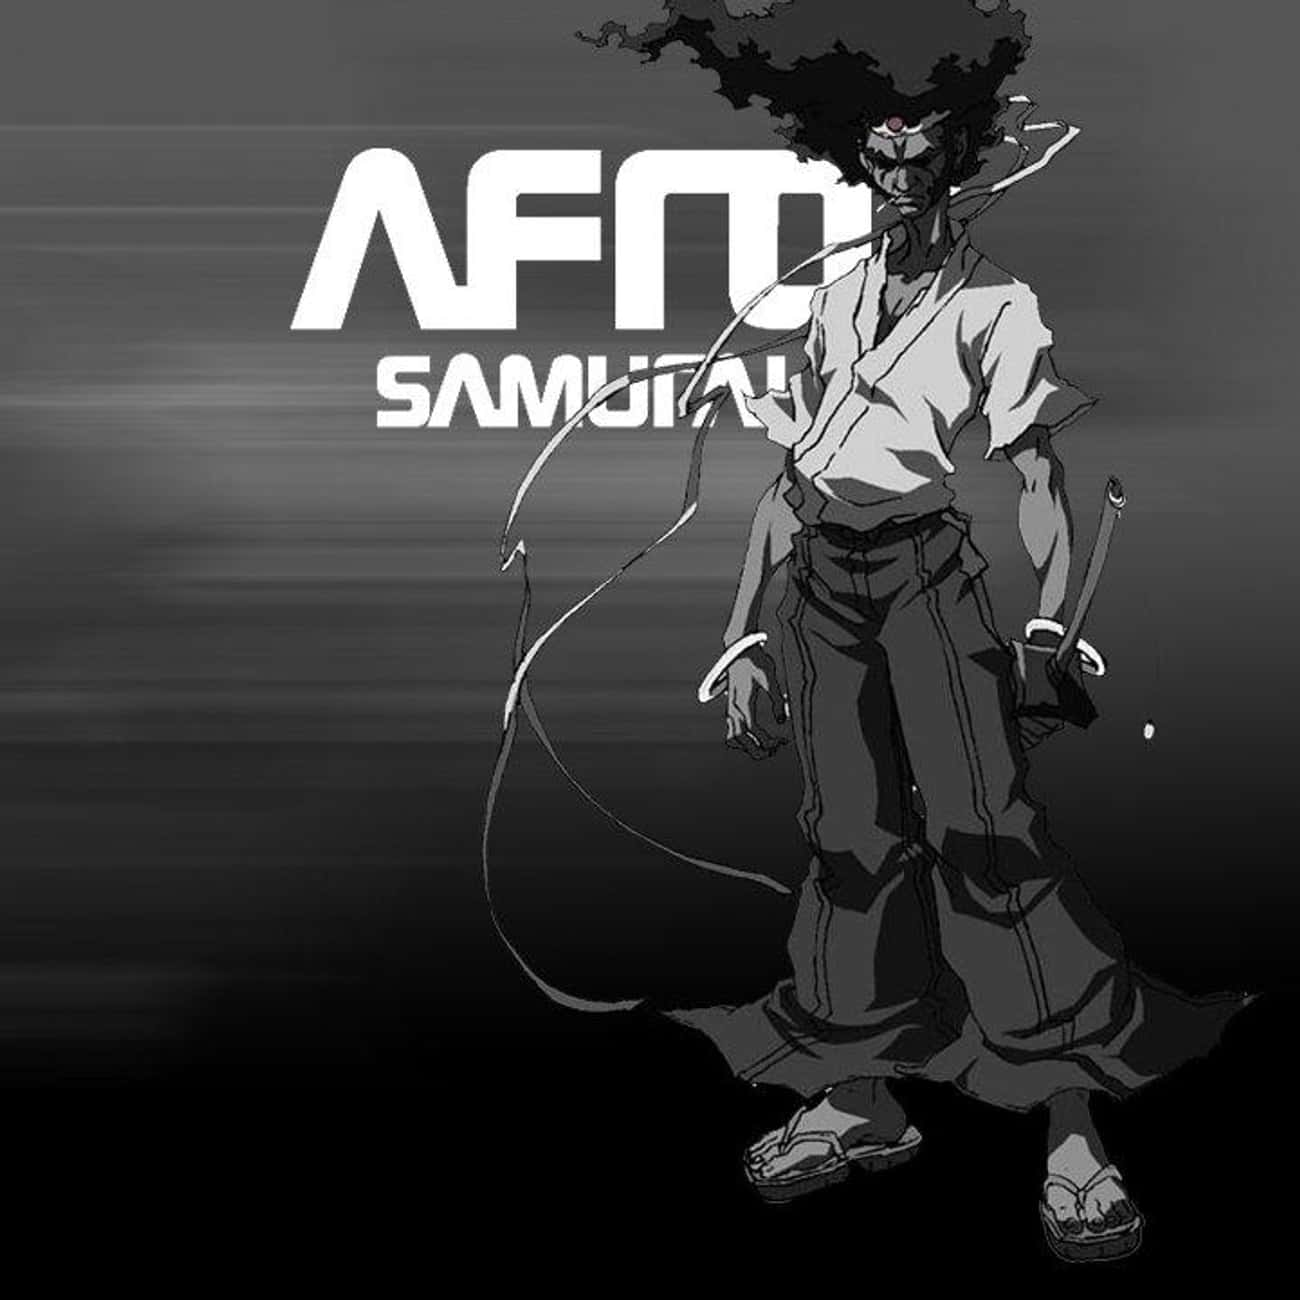 Afro Samurai is listed (or ranked) 1 on the list What To Watch If You Love 'The Boondocks'